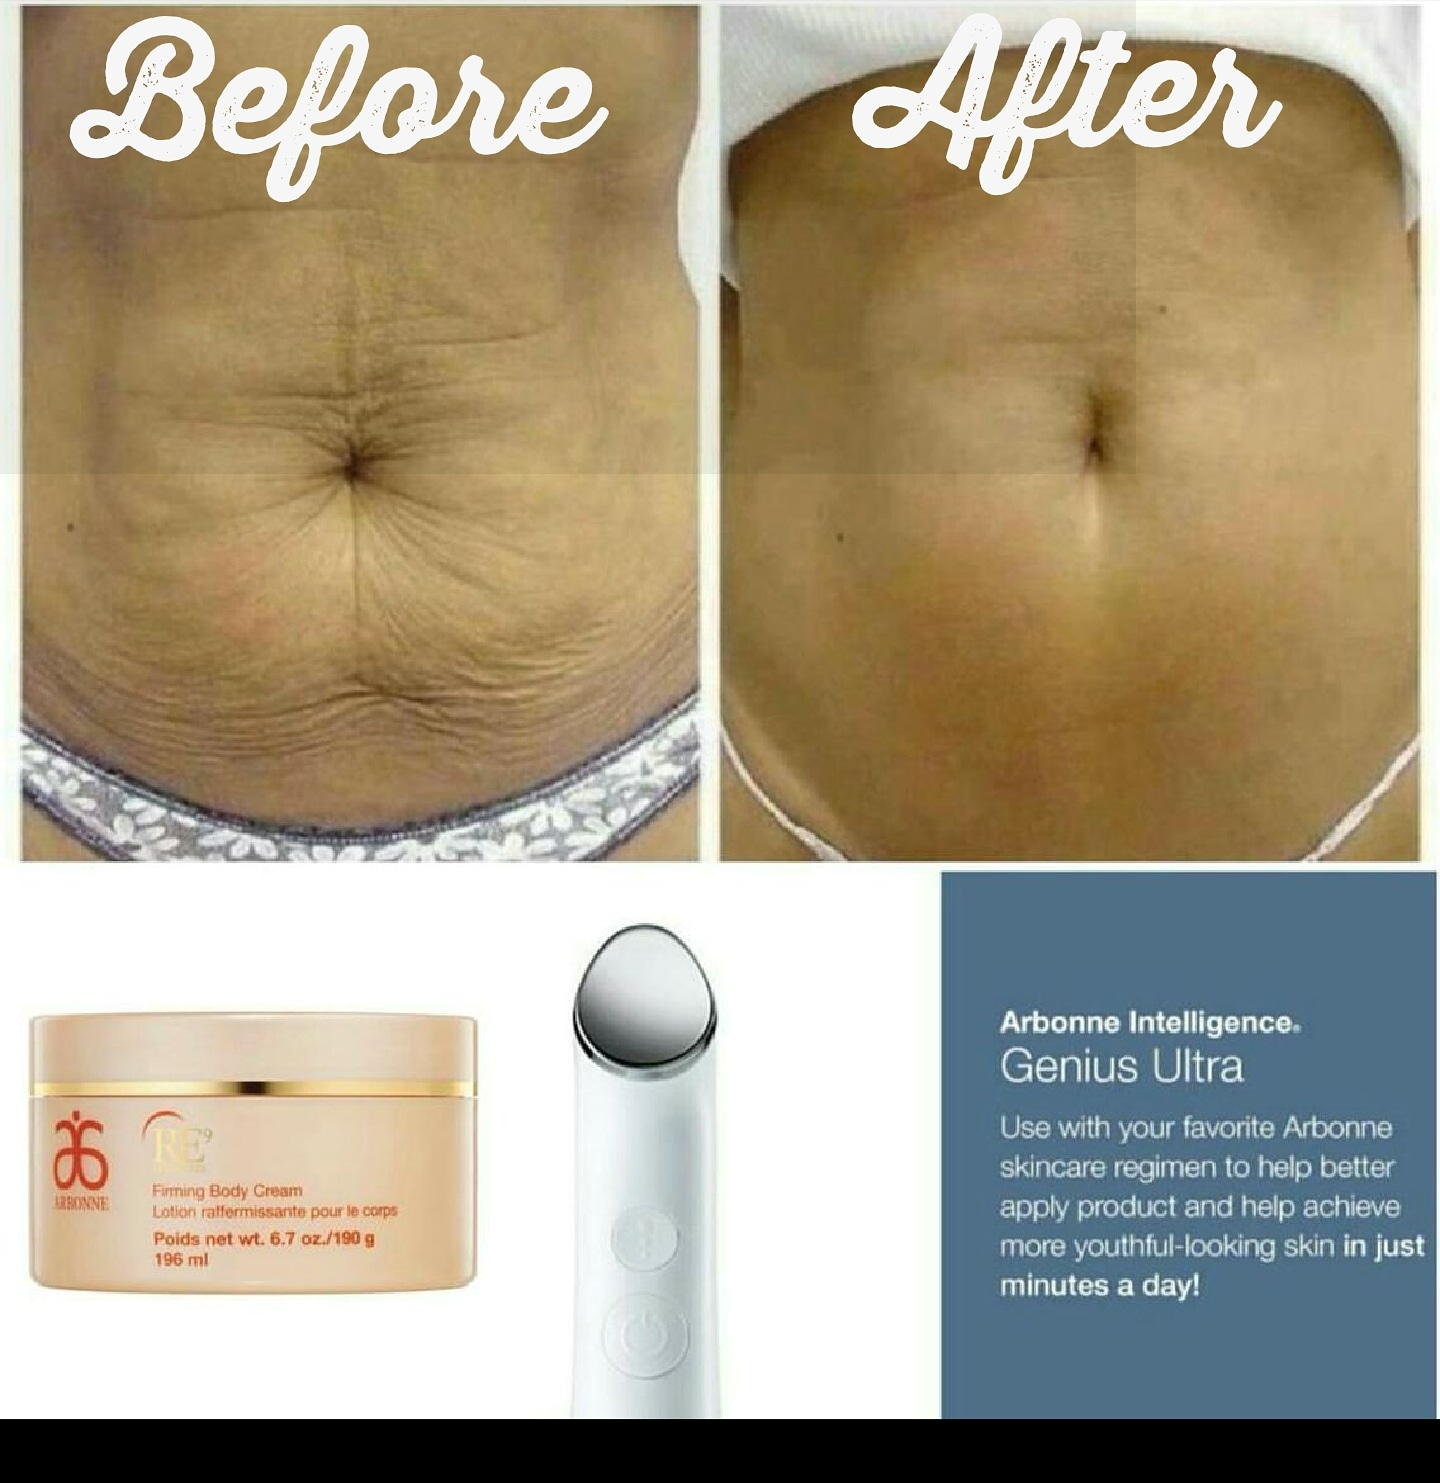 Lsnem Arbonne For You Too Arbonne Firming Cream Genius Ultra Wand